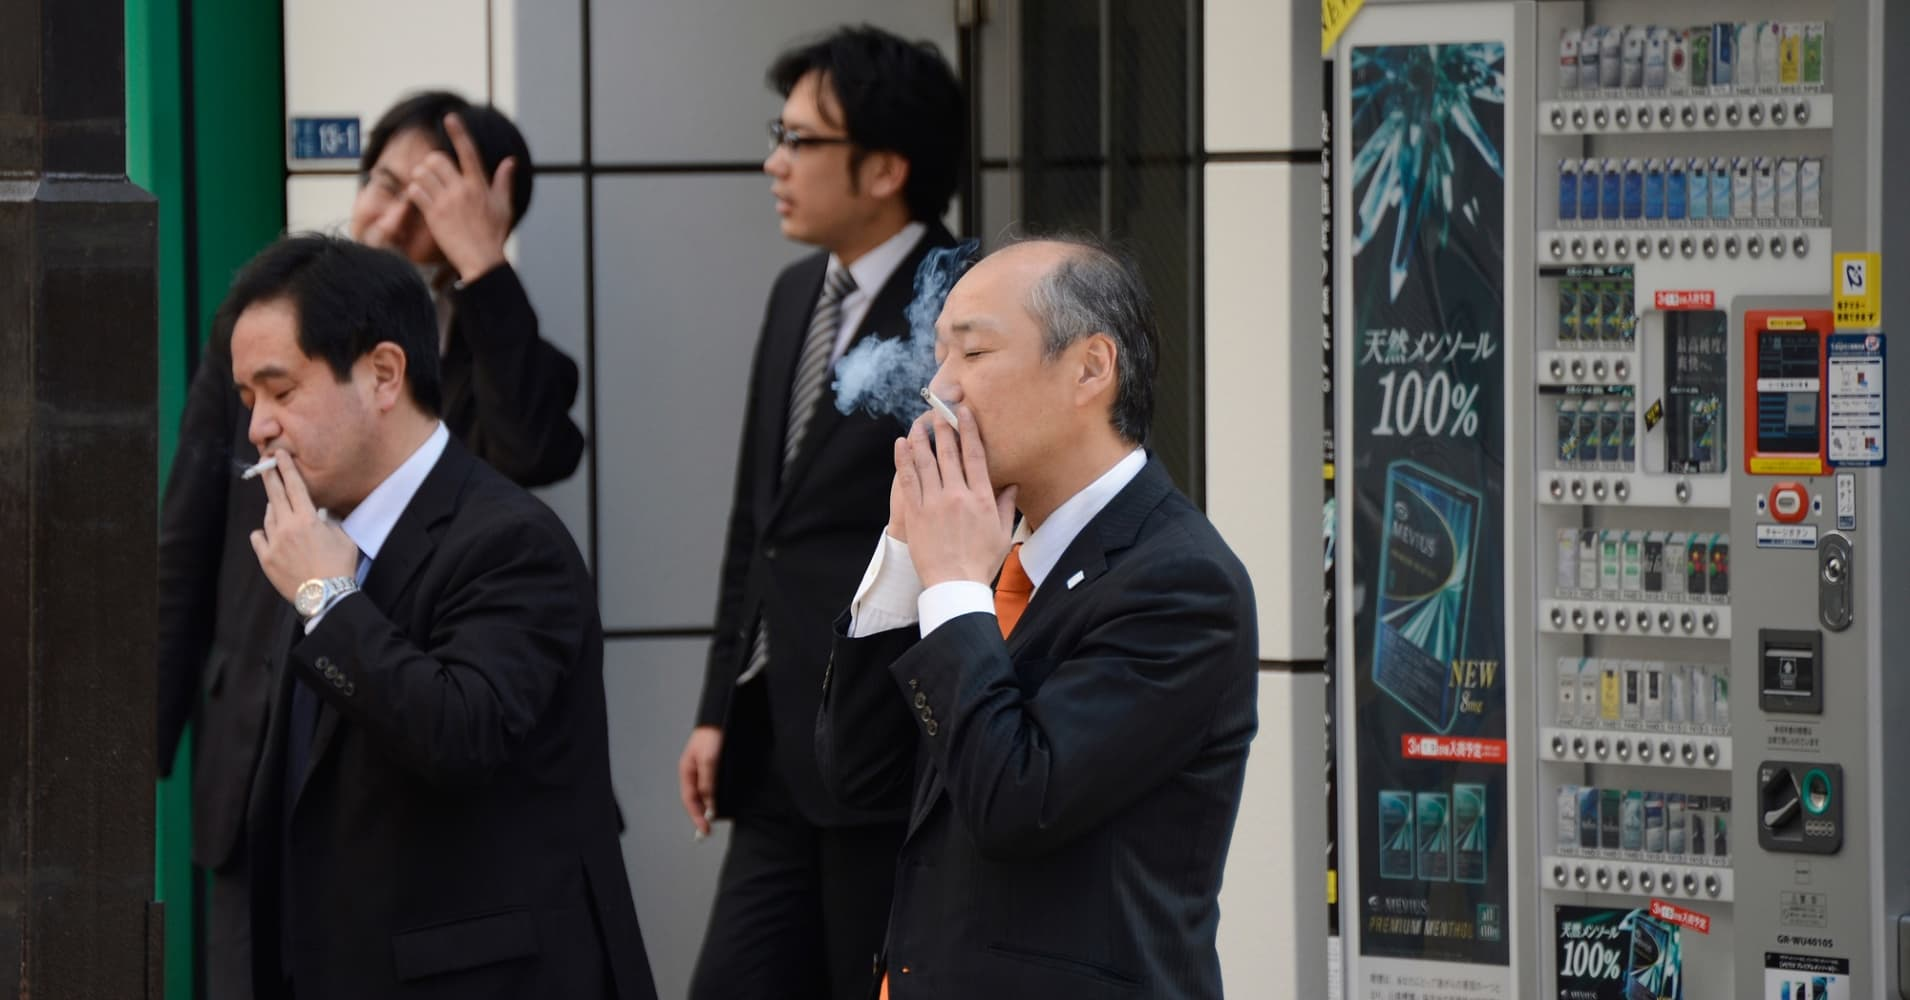 This Japanese company is giving non-smokers 6 extra ...